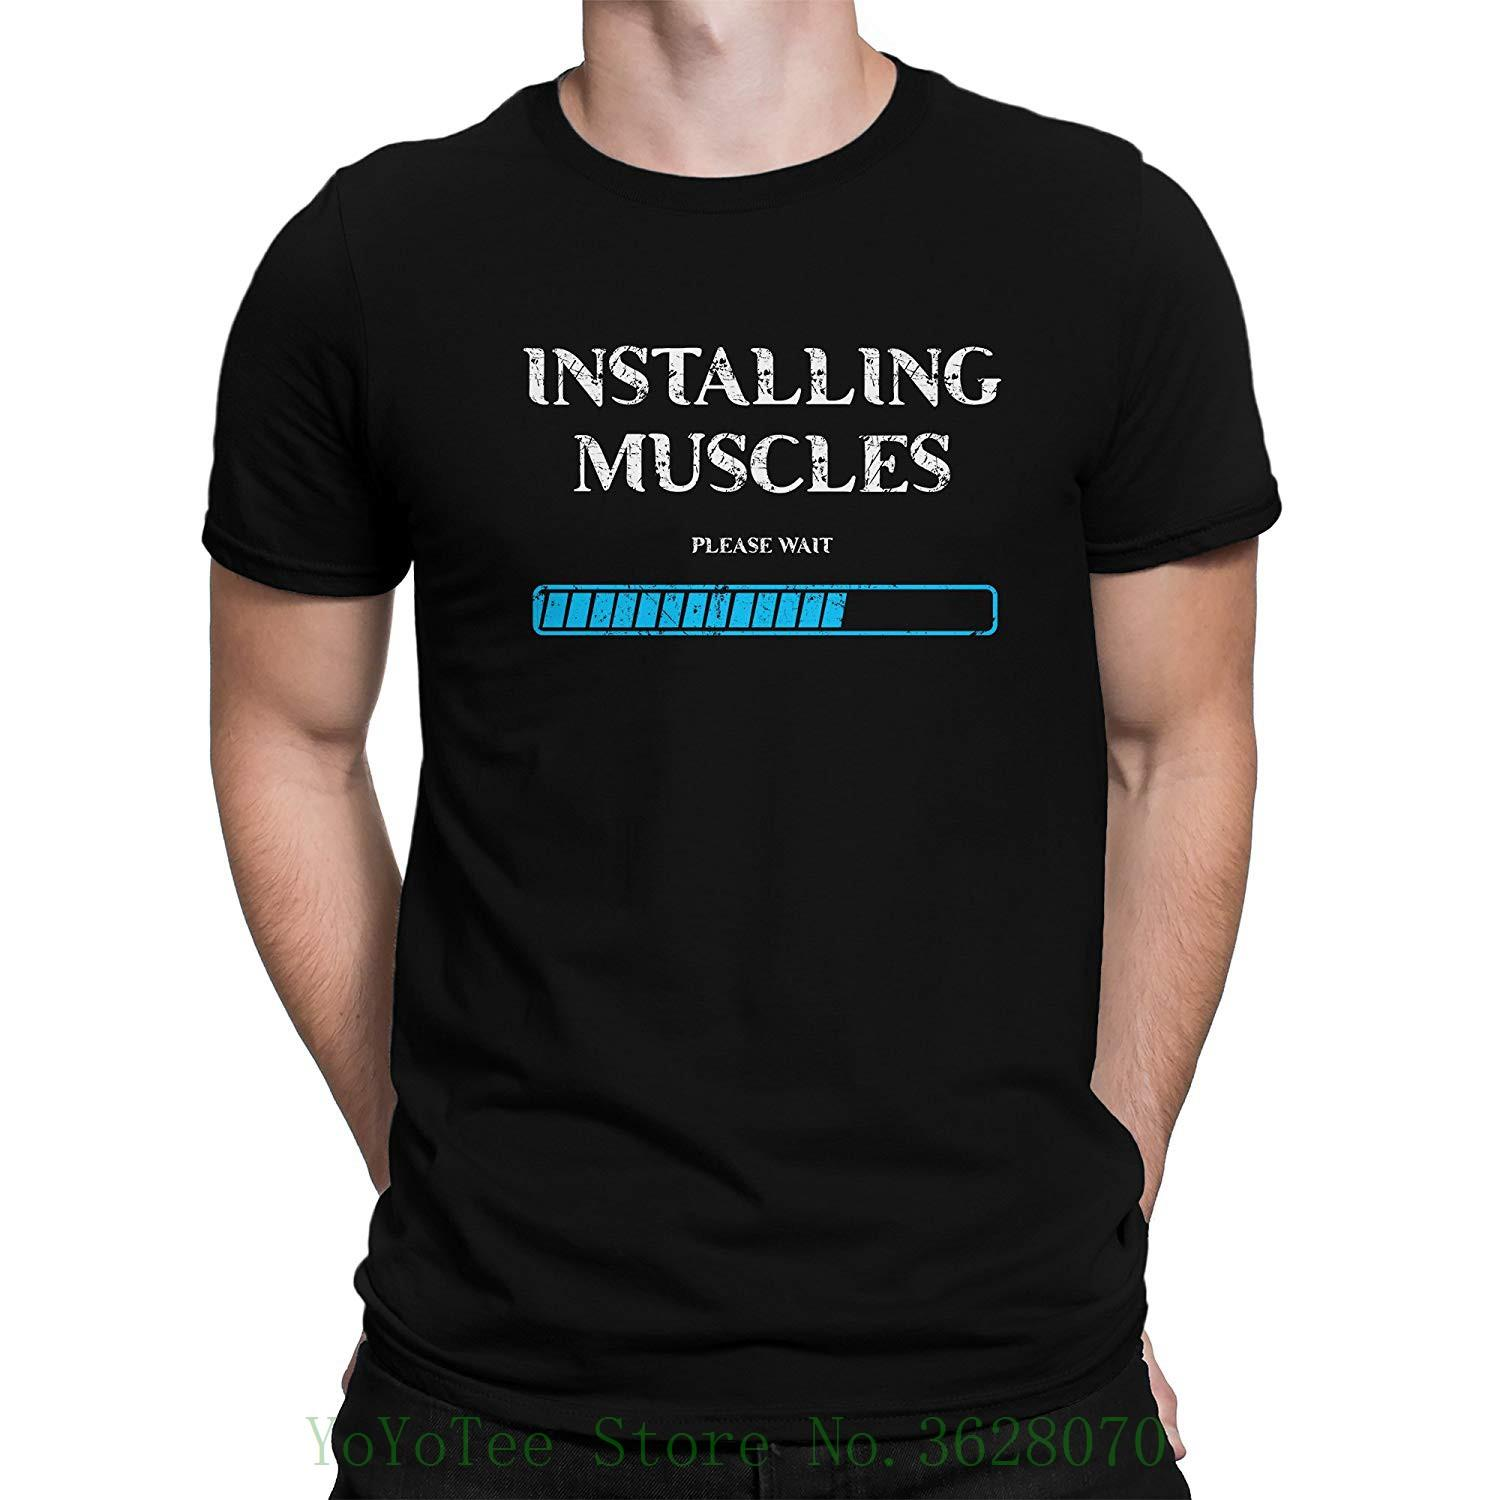 c76ad12f Installing Muscles Loading Gymnasium Motivation Men'S T Shirt New Men  Summer Tops Casuals Shirts Best Sites For T Shirts Tee Shirt Deals From  Yoyoteestore, ...